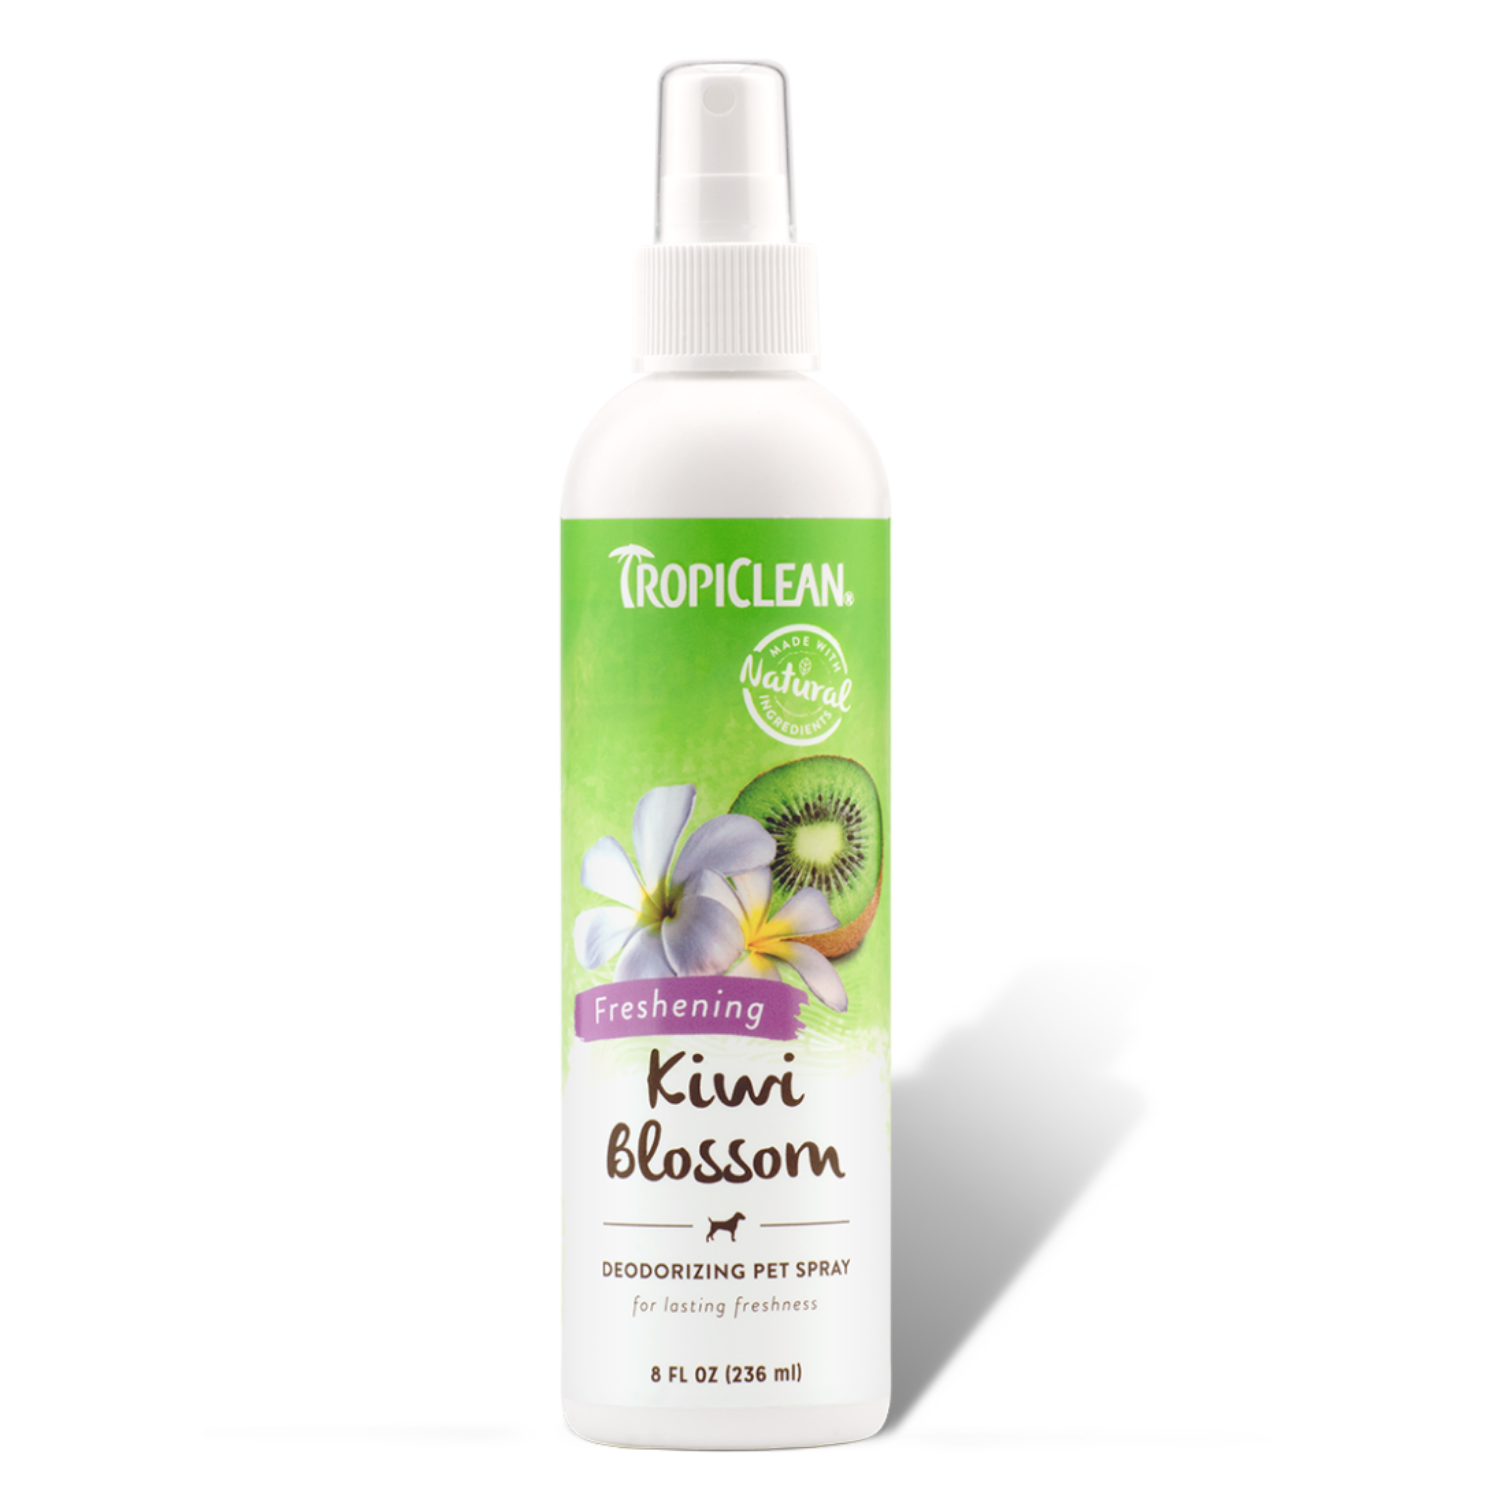 Tropiclean Kiwi Blossom Deodorizing Pet Spray - 236ml